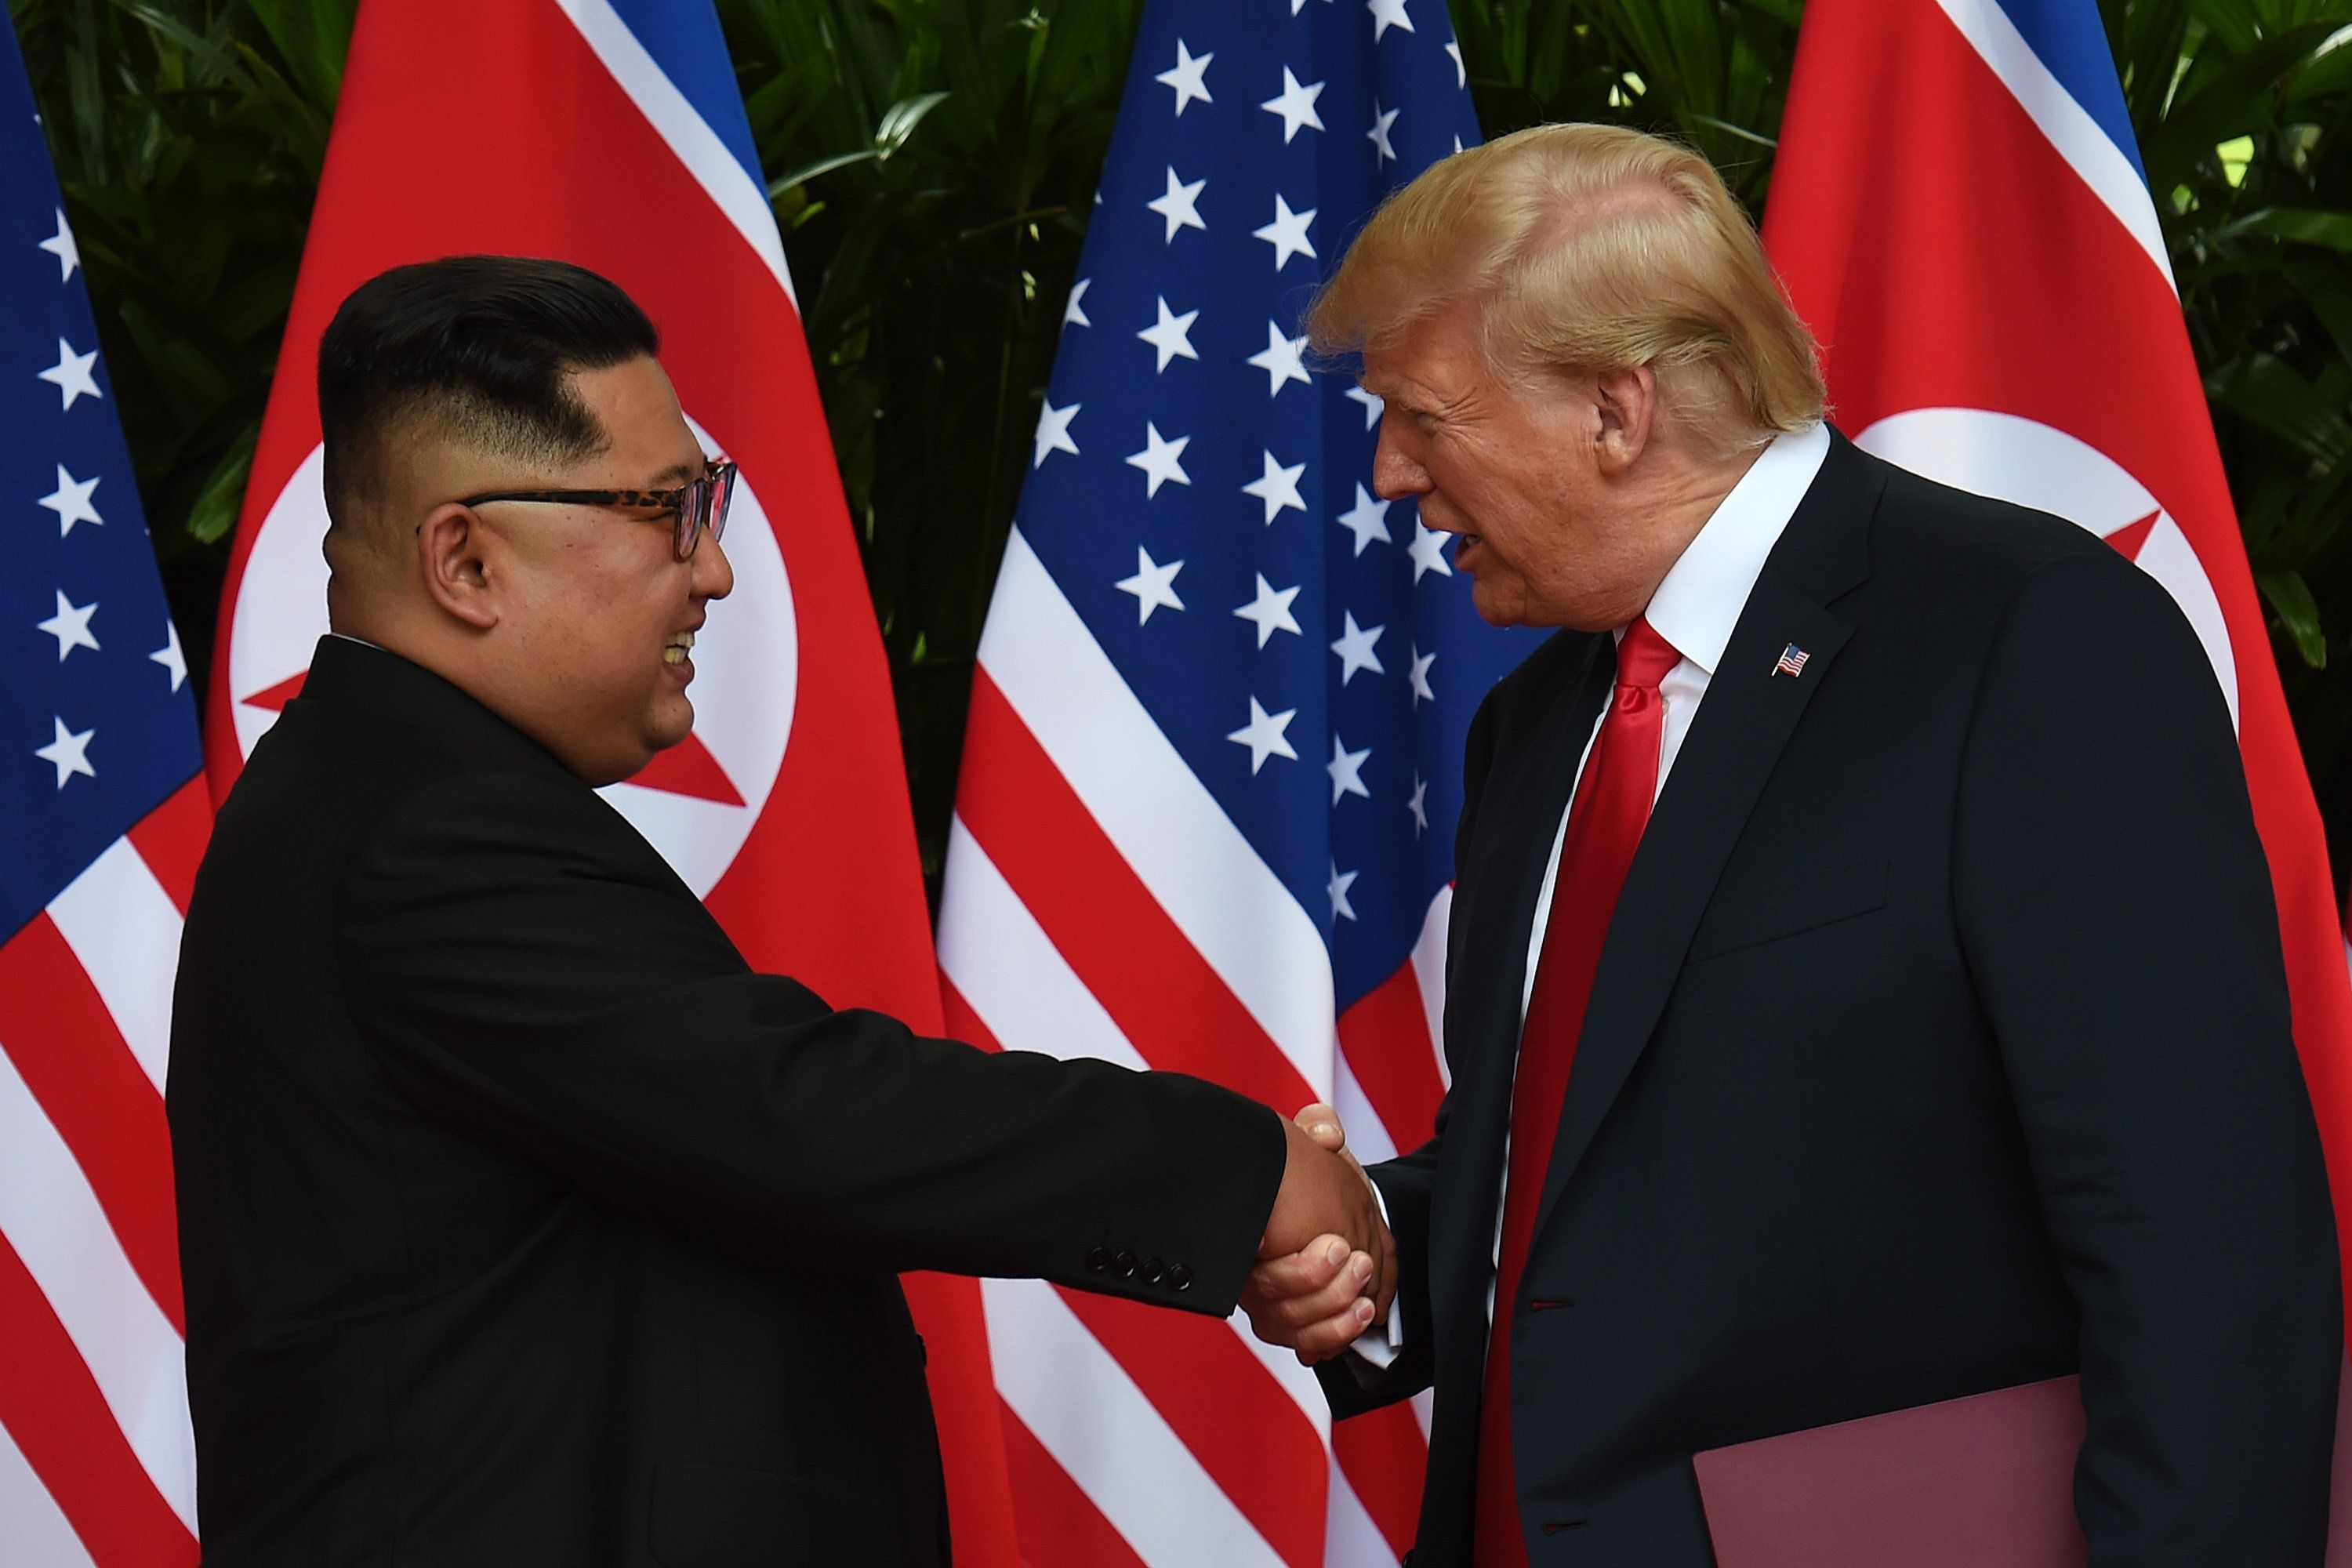 TOPSHOT - North Korea's leader Kim Jong Un (L) shakes hands with US President Donald Trump (R) after taking part in a signing ceremony at the end of their historic US-North Korea summit, at the Capella Hotel on Sentosa island in Singapore on June 12, 2018. - Donald Trump and Kim Jong Un became on June 12 the first sitting US and North Korean leaders to meet, shake hands and negotiate to end a decades-old nuclear stand-off. (Photo by Anthony WALLACE / POOL / AFP)        (Photo credit should read ANTHONY WALLACE/AFP/Getty Images)